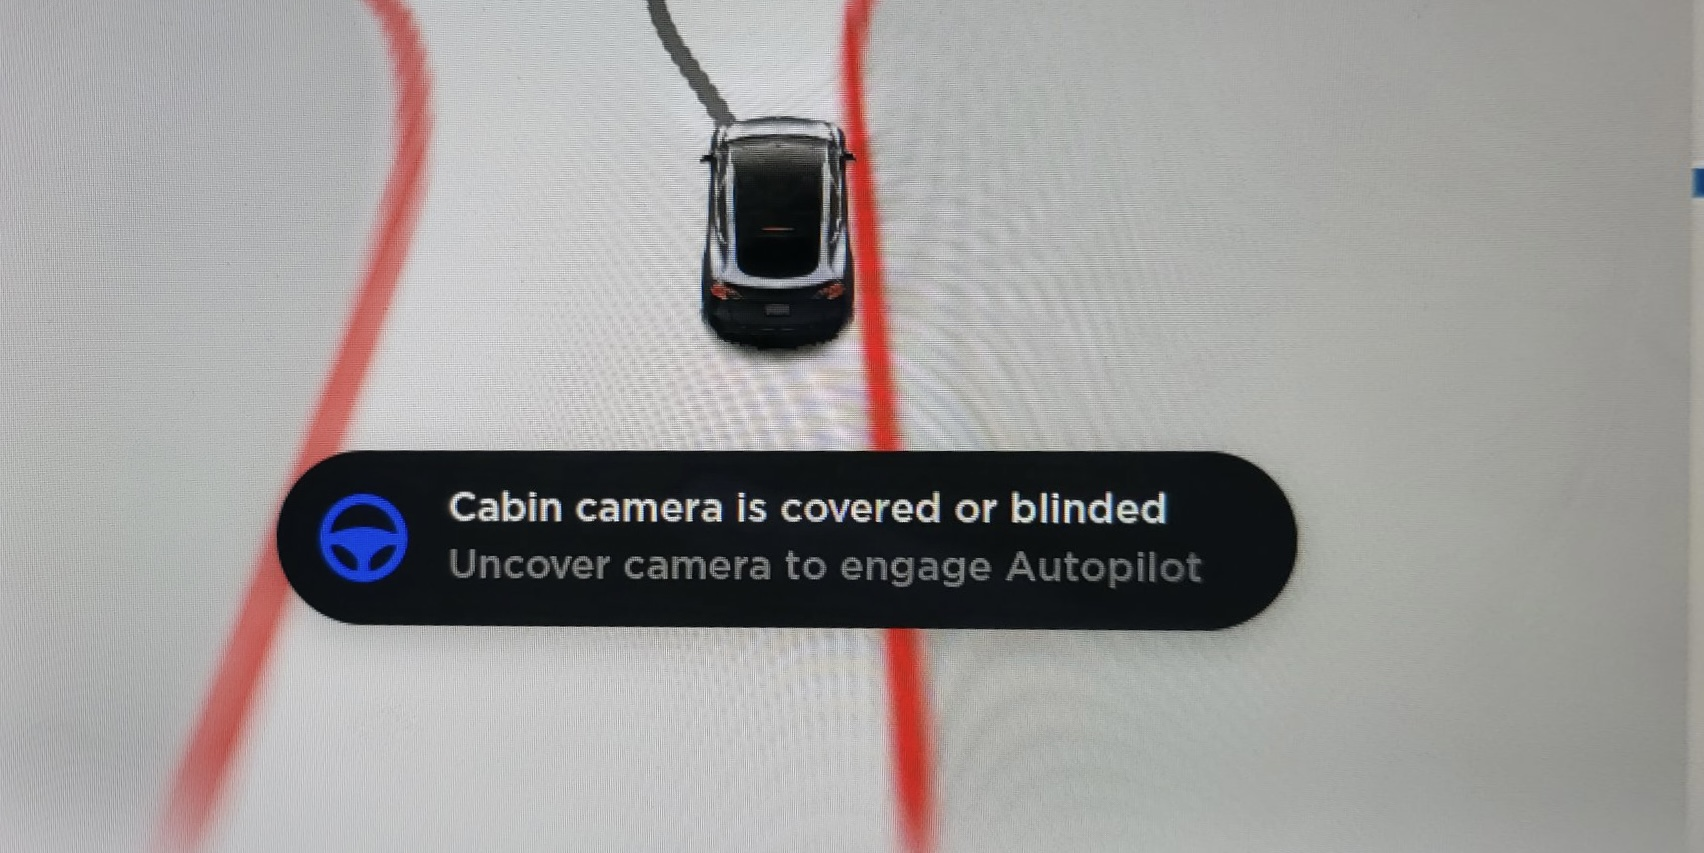 Covering the cabin camera now stops Tesla Autopilot